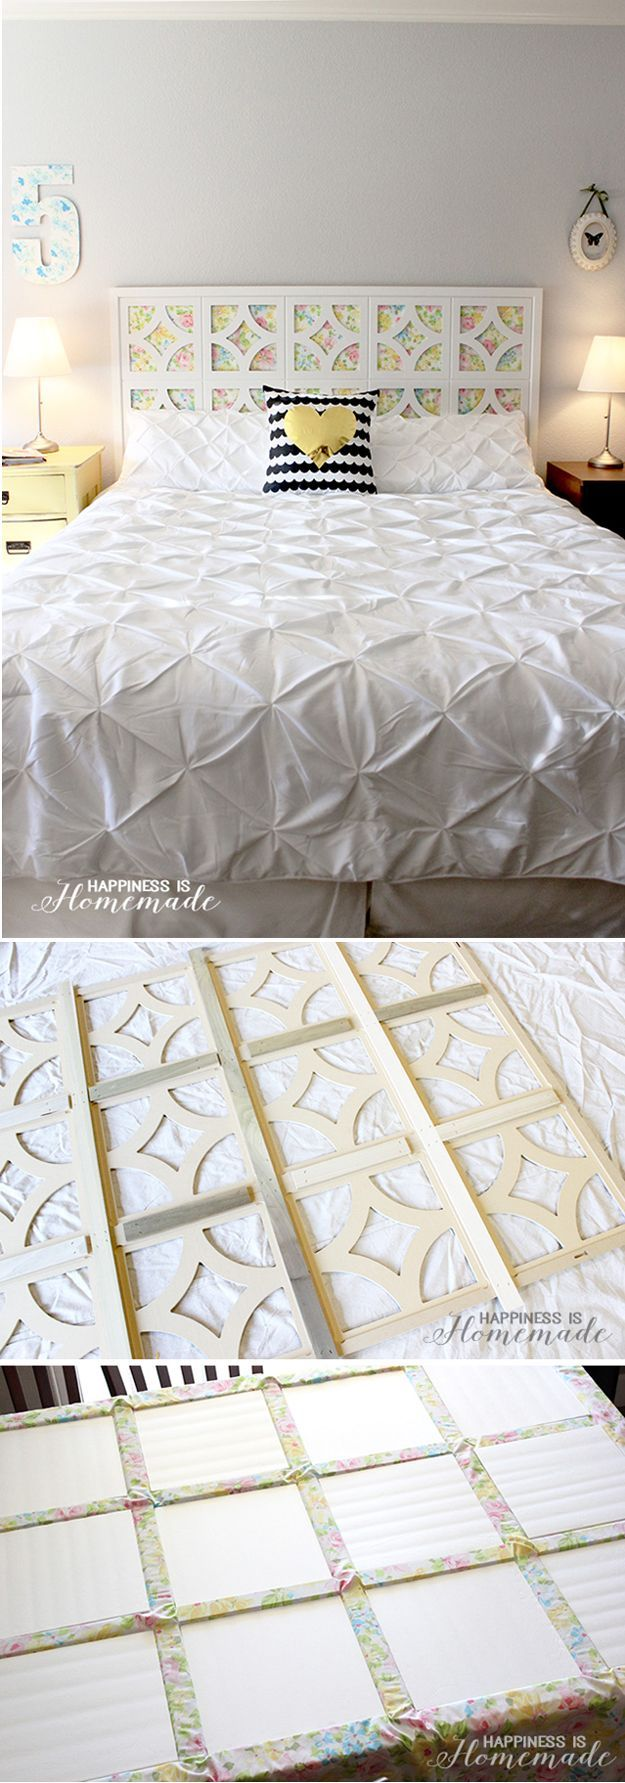 Cool and Simple Fabric Headboard | DIY Vintage Sheet Headboard by DIY Ready at http://diyready.com/diy-headboards-for-every-home/